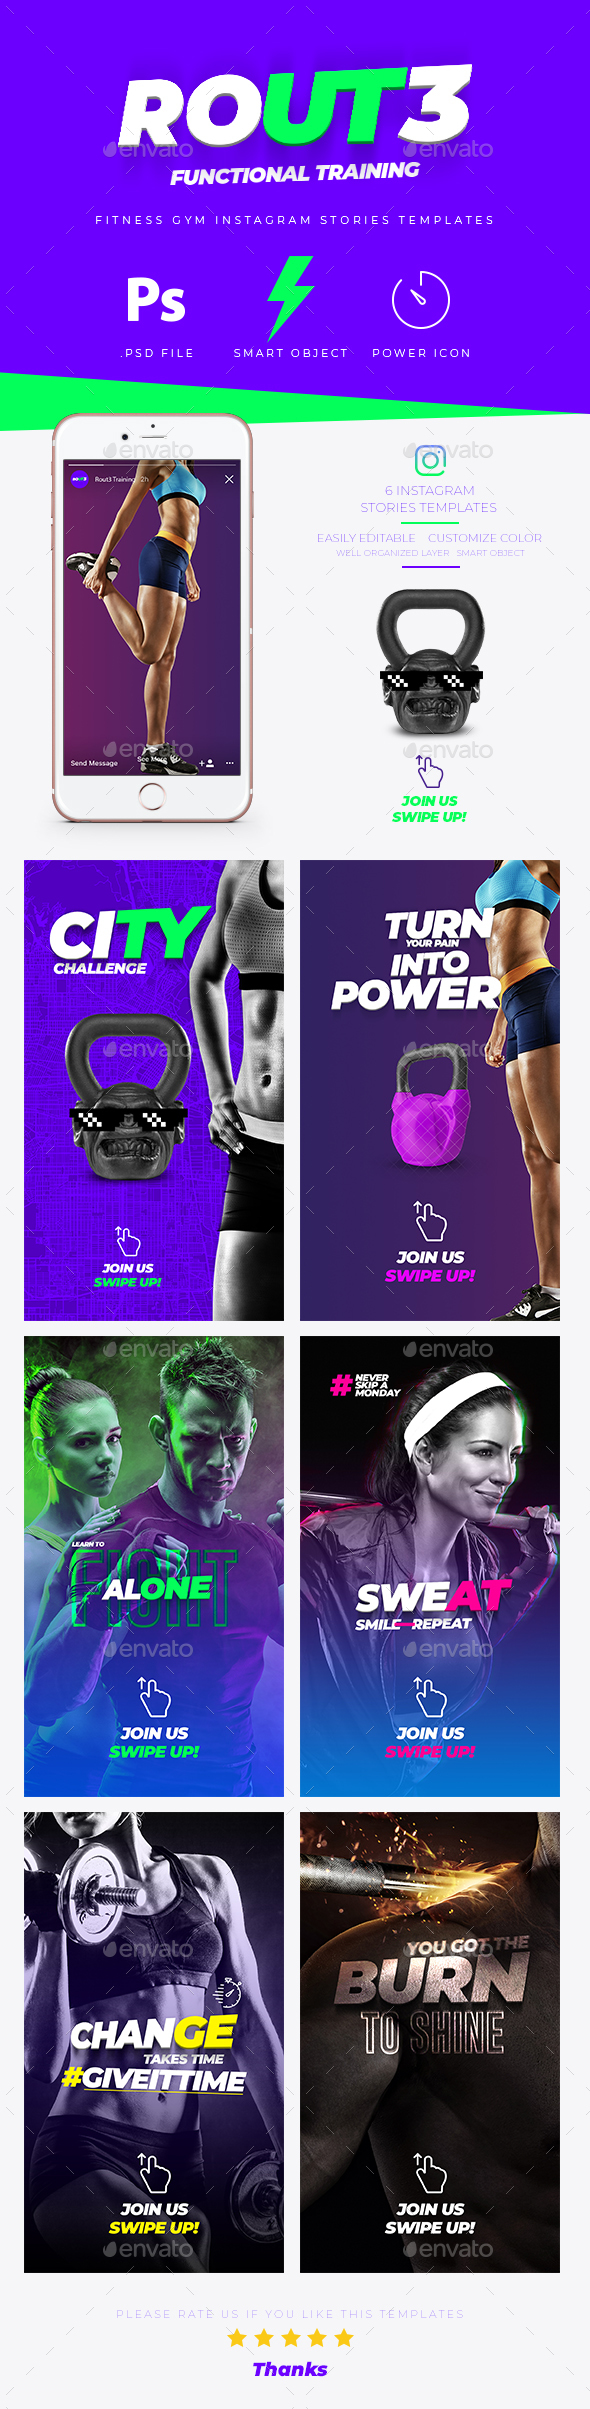 Fitness GYM Instagram Stories Banner Templates - Social Media Web Elements